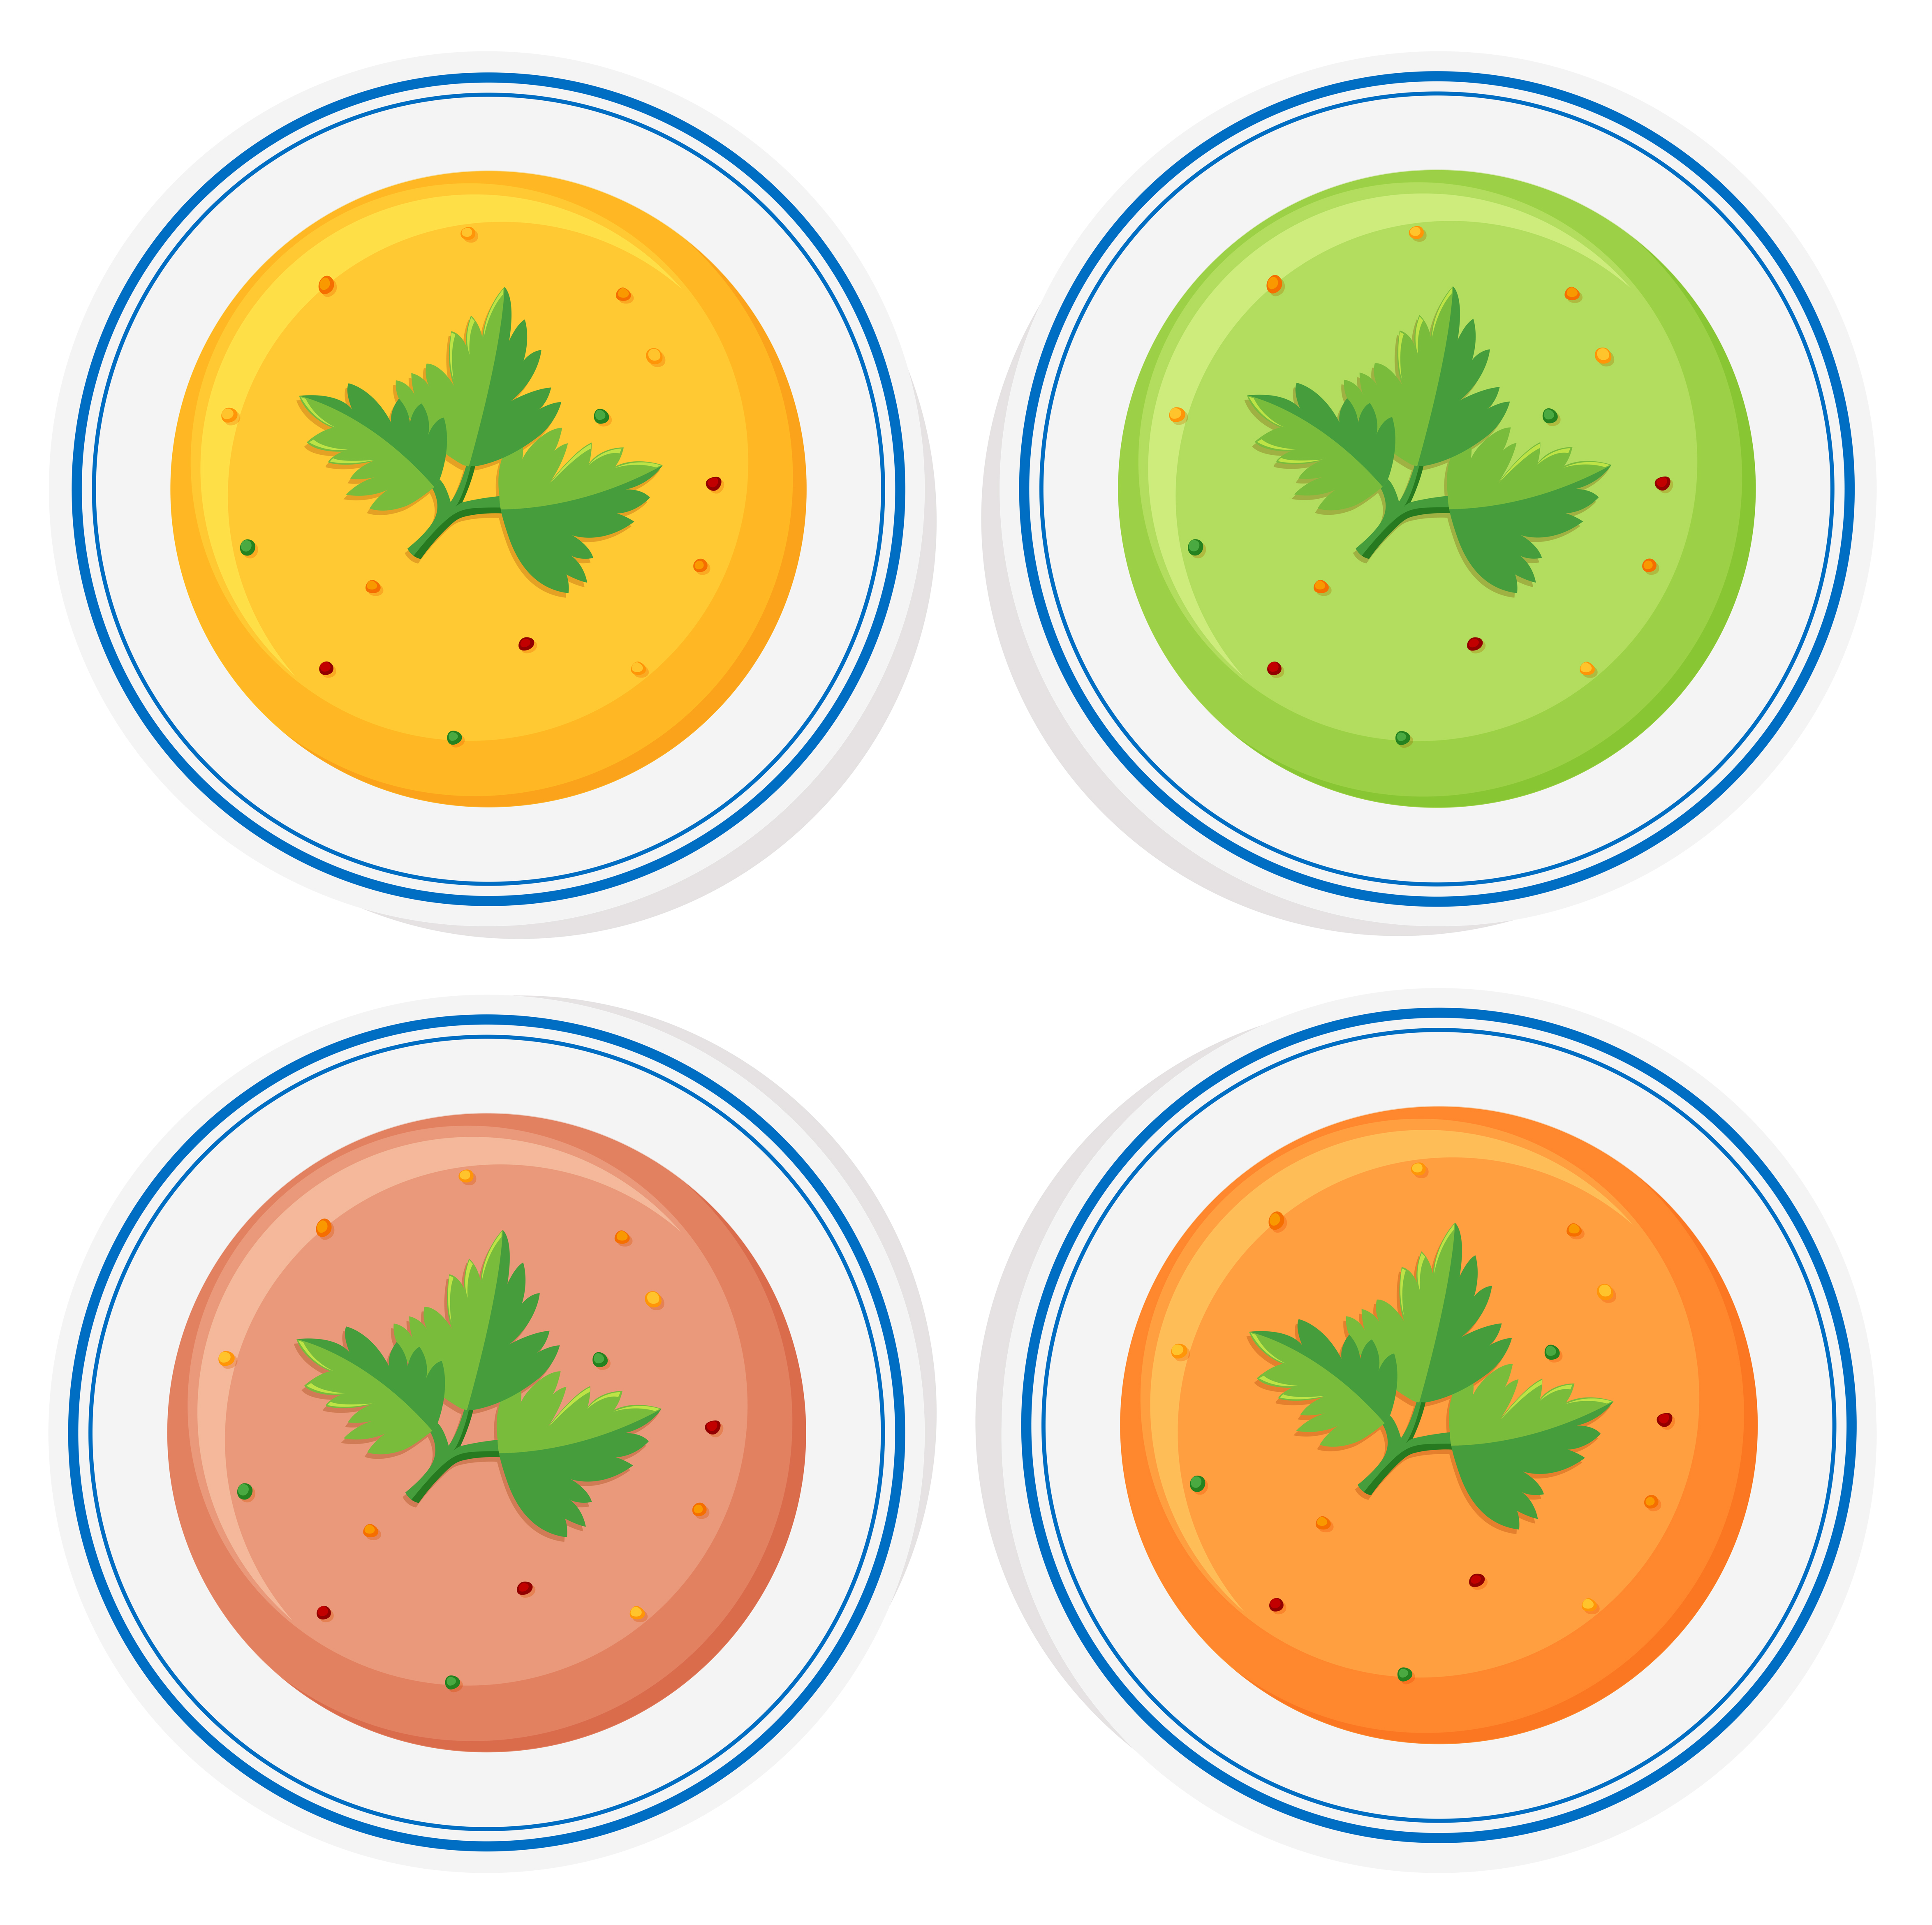 Different Types Of Soup In Bowls